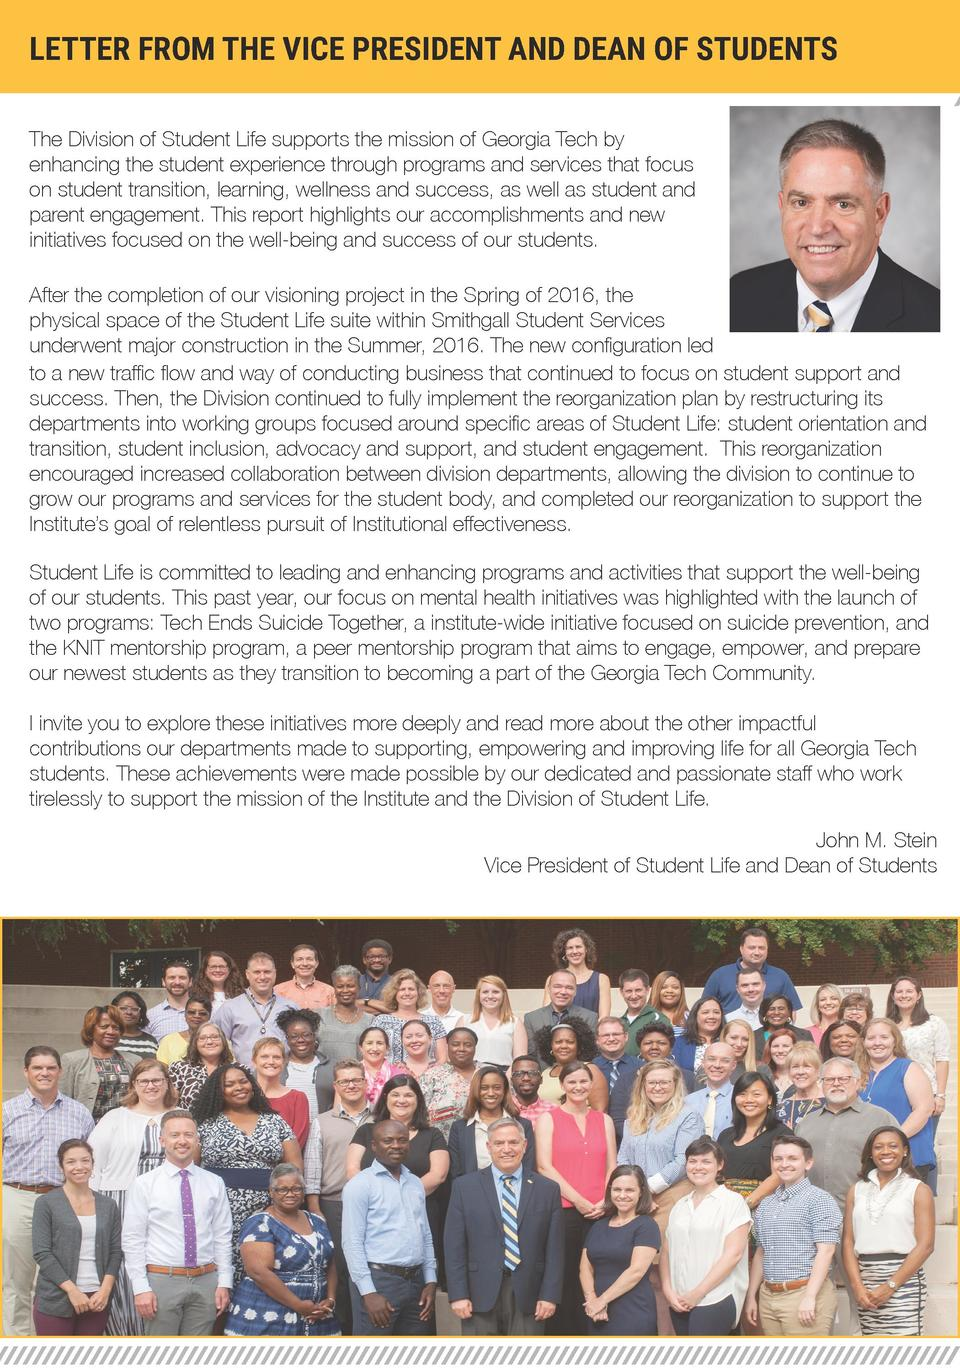 LETTER FROM THE VICE PRESIDENT AND DEAN OF STUDENTS The Division of Student Life supports the mission of Georgia Tech by e...